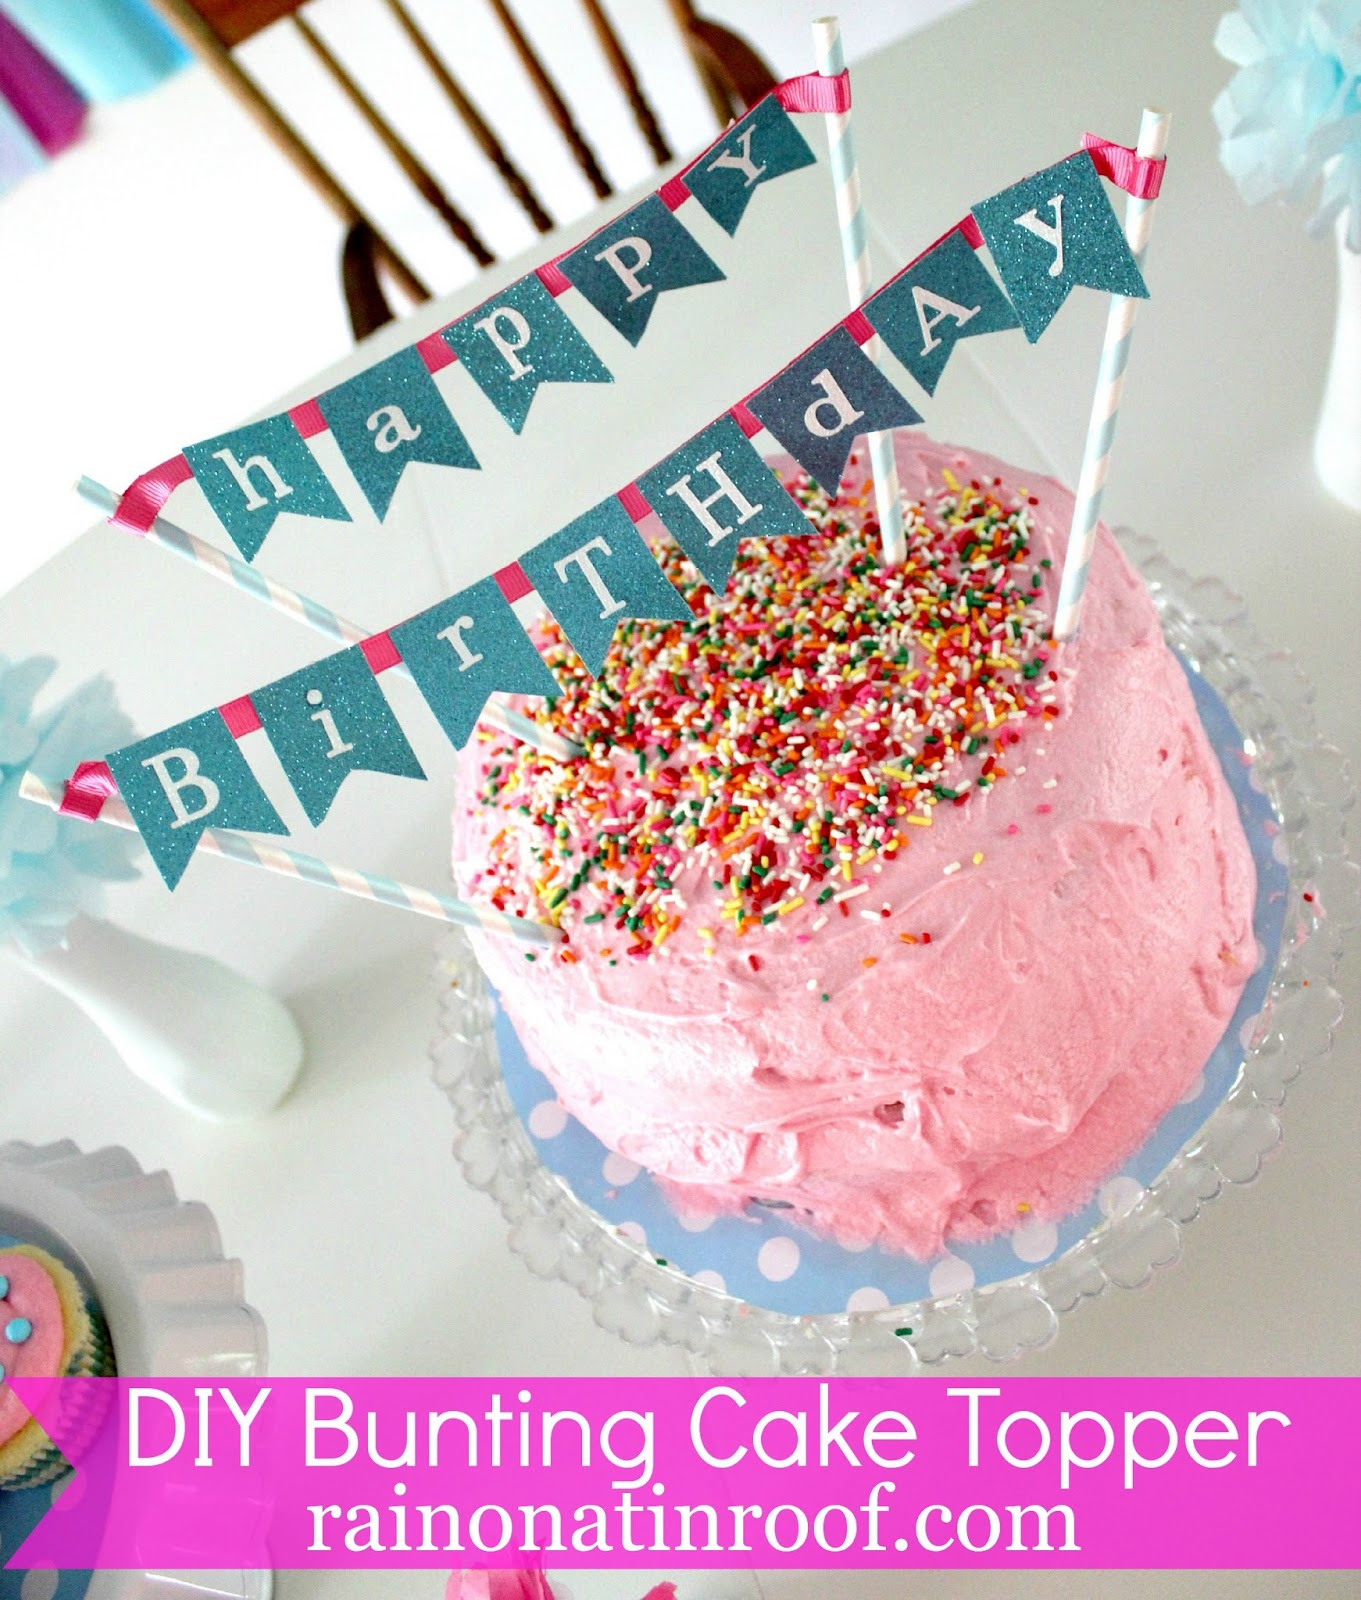 Easy Diy Cake Topper In Under An Hour